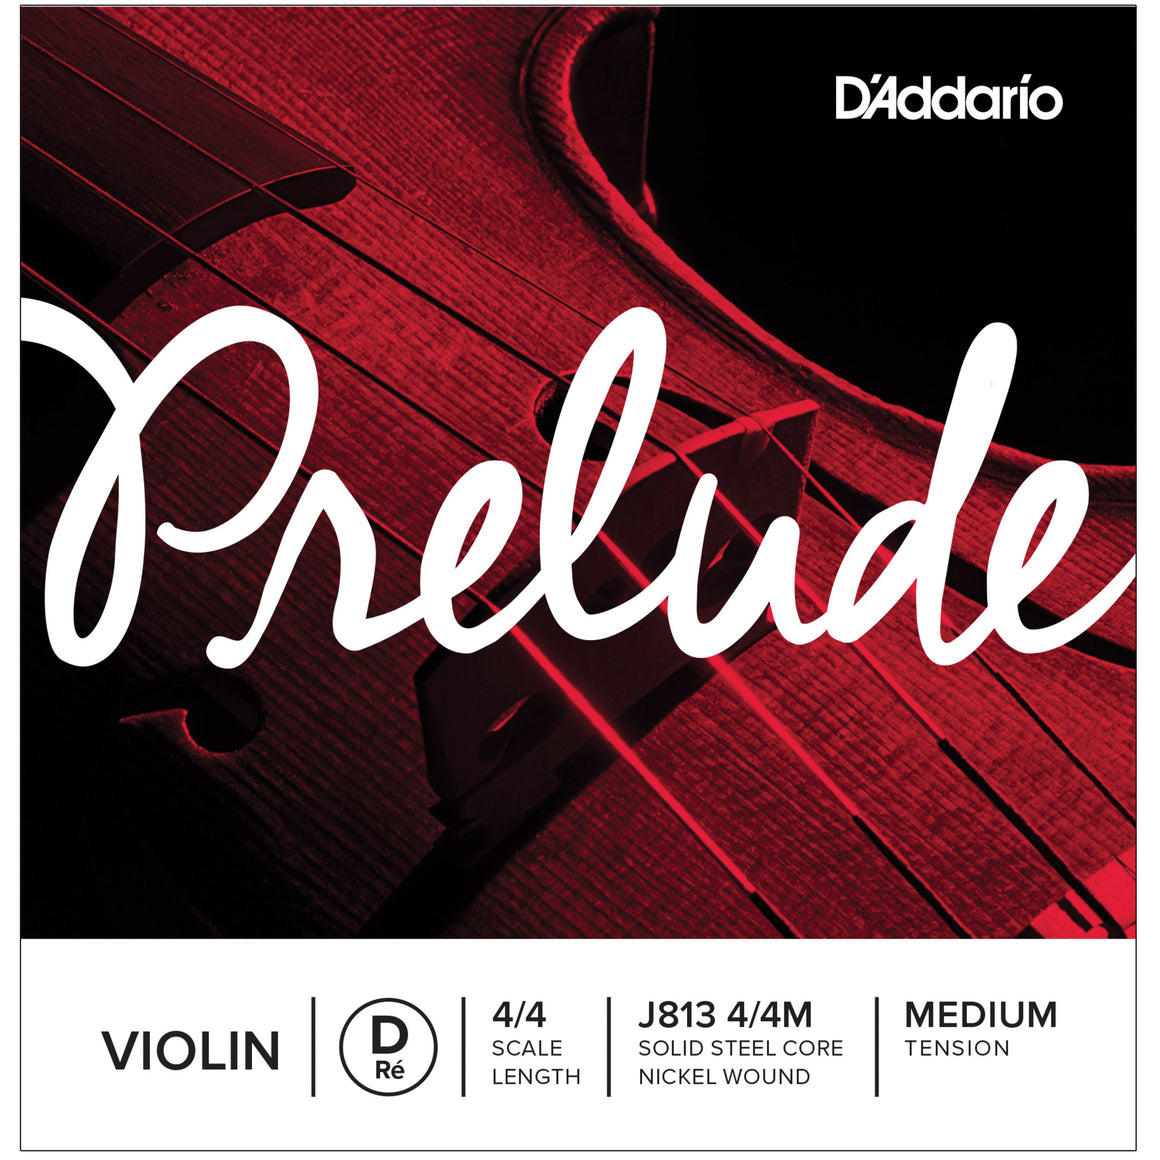 D'Addario Prelude 4/4 Full D Violin Single String Medium J813